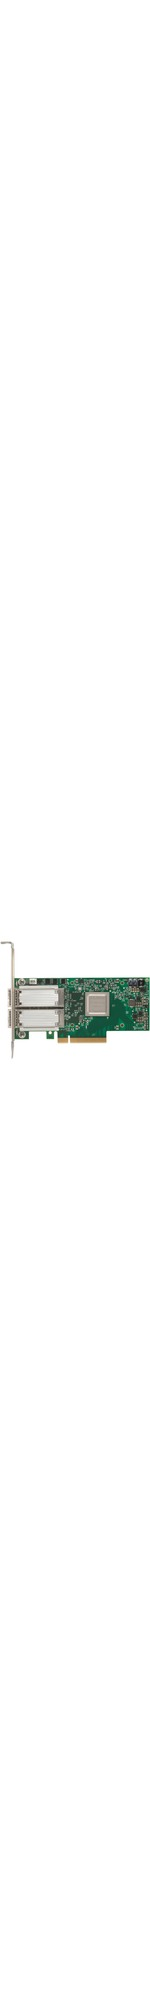 Mellanox ConnectX-4 50Gigabit Ethernet Card for Server - PCI Express 3.0 x8 - 2 Ports - Optical Fiber